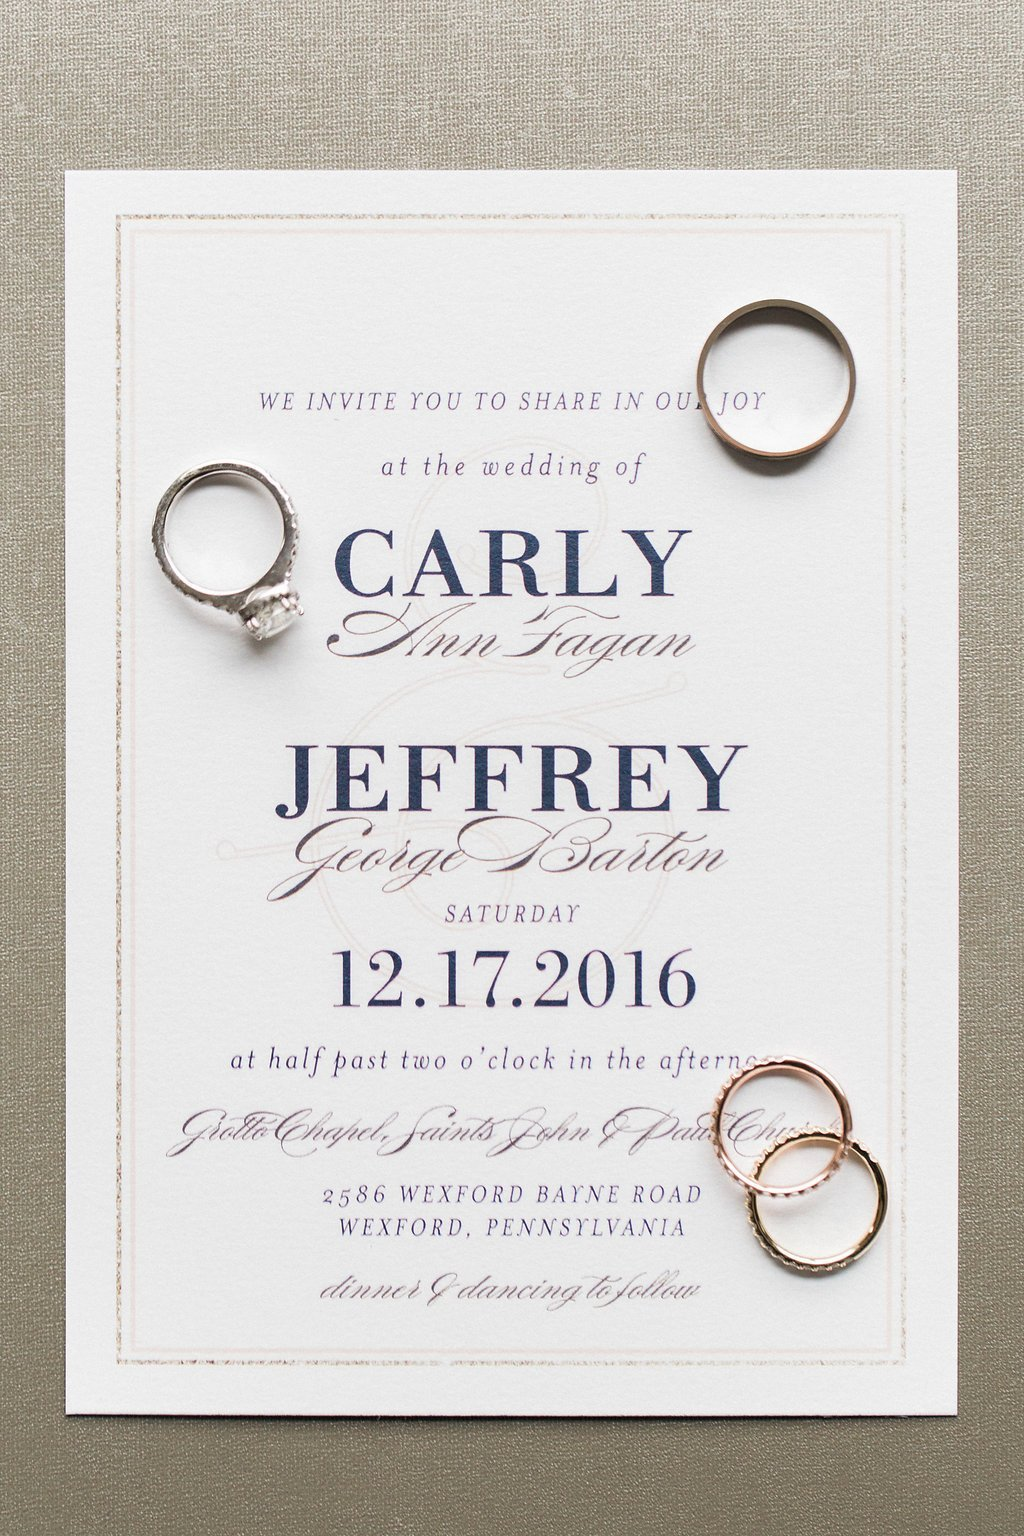 Photo of the wedding invitation and rings - J Verno Studios Winter Wedding